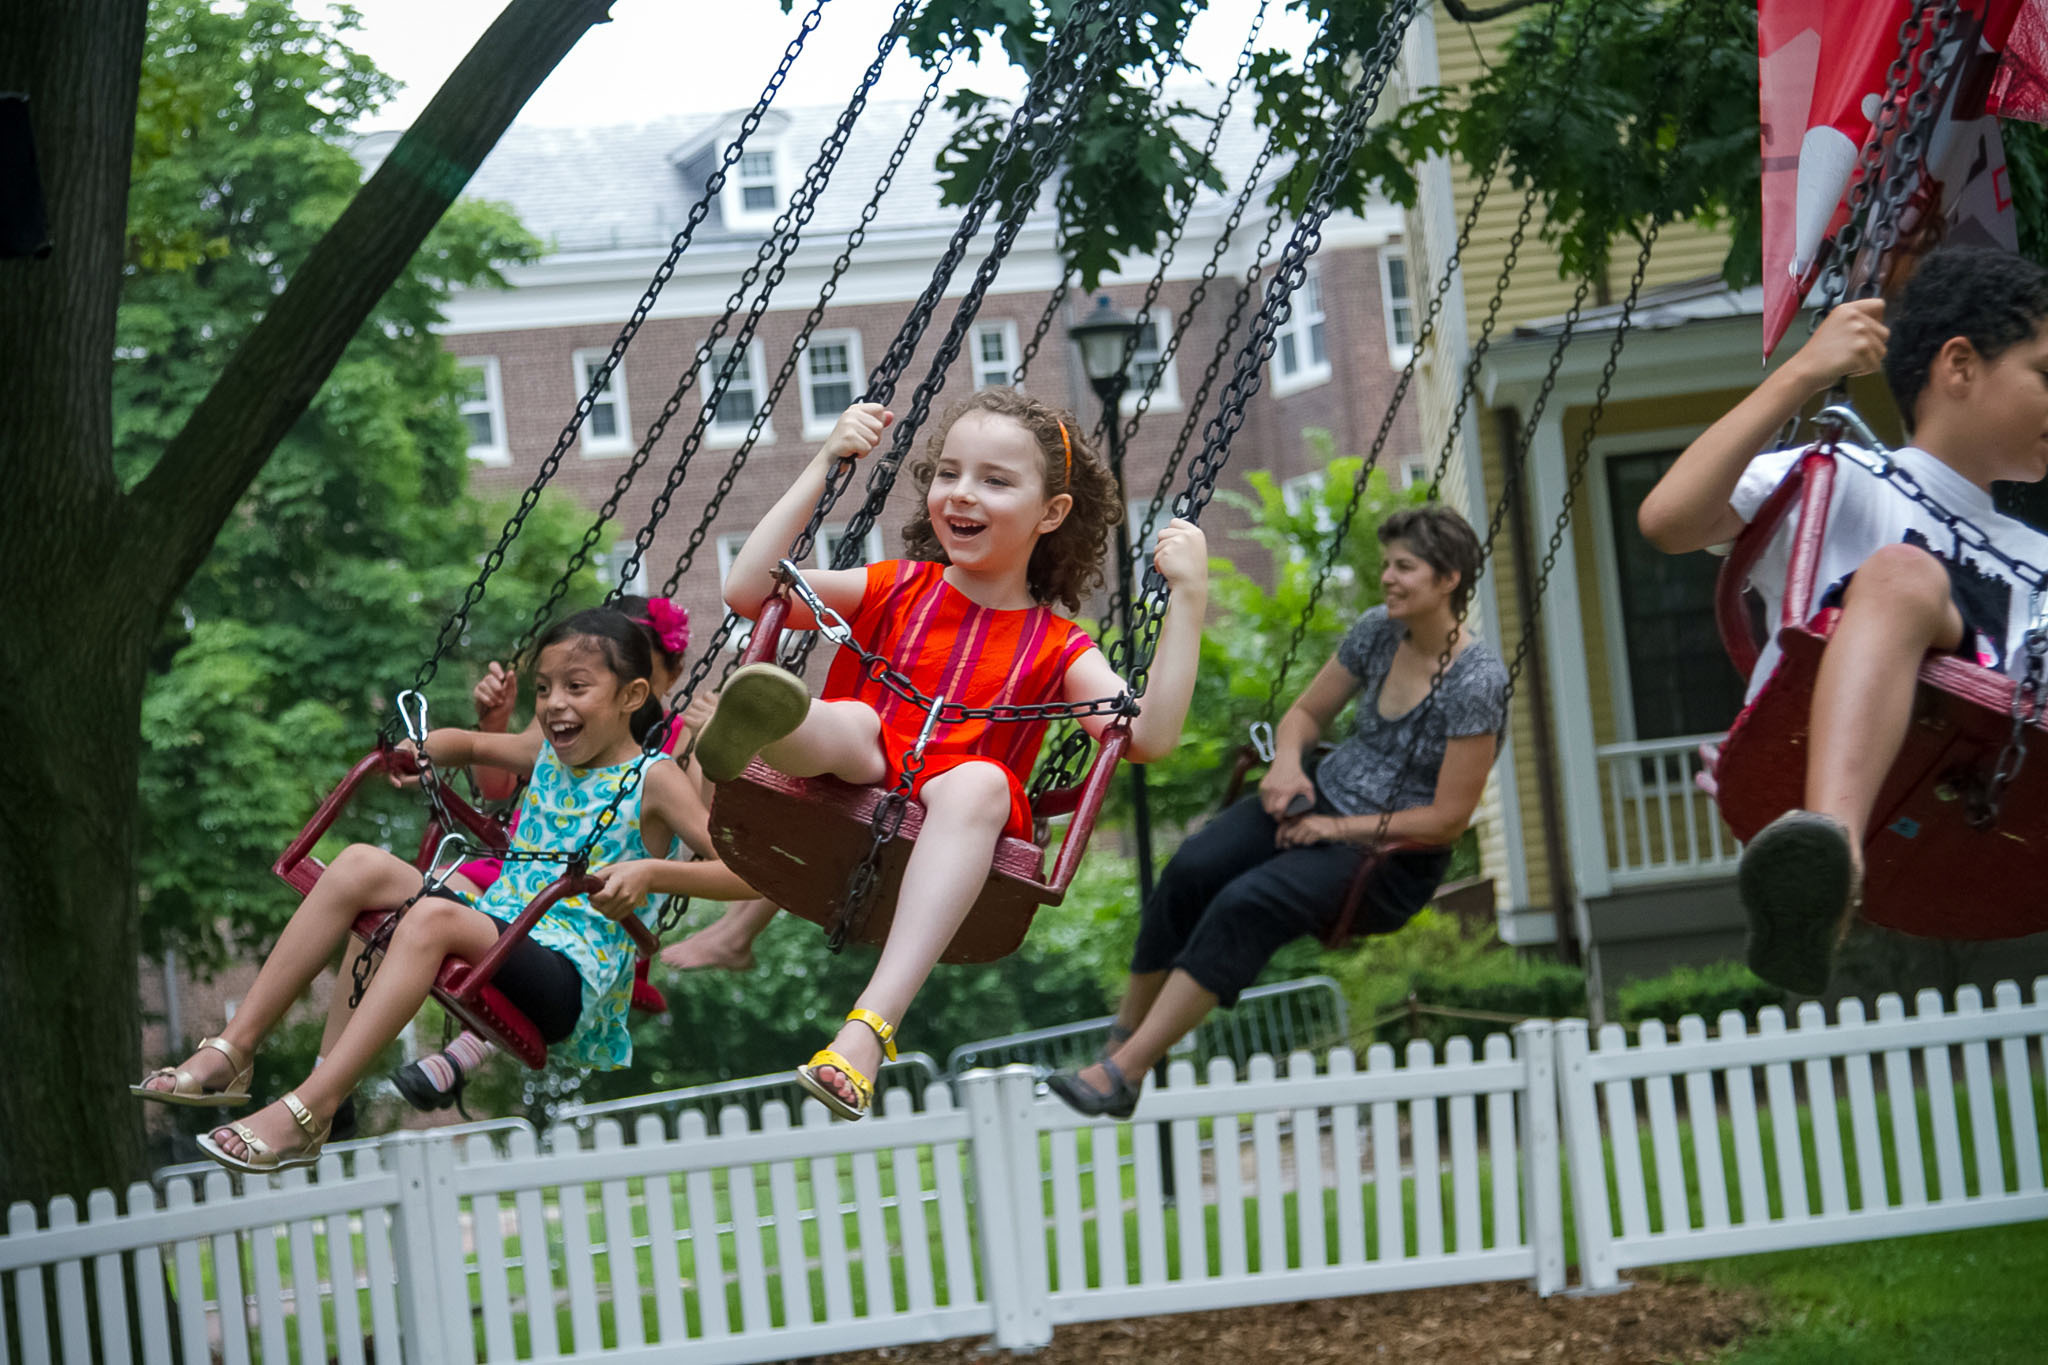 Best summer attraction we wish was open year-round: Governors Island